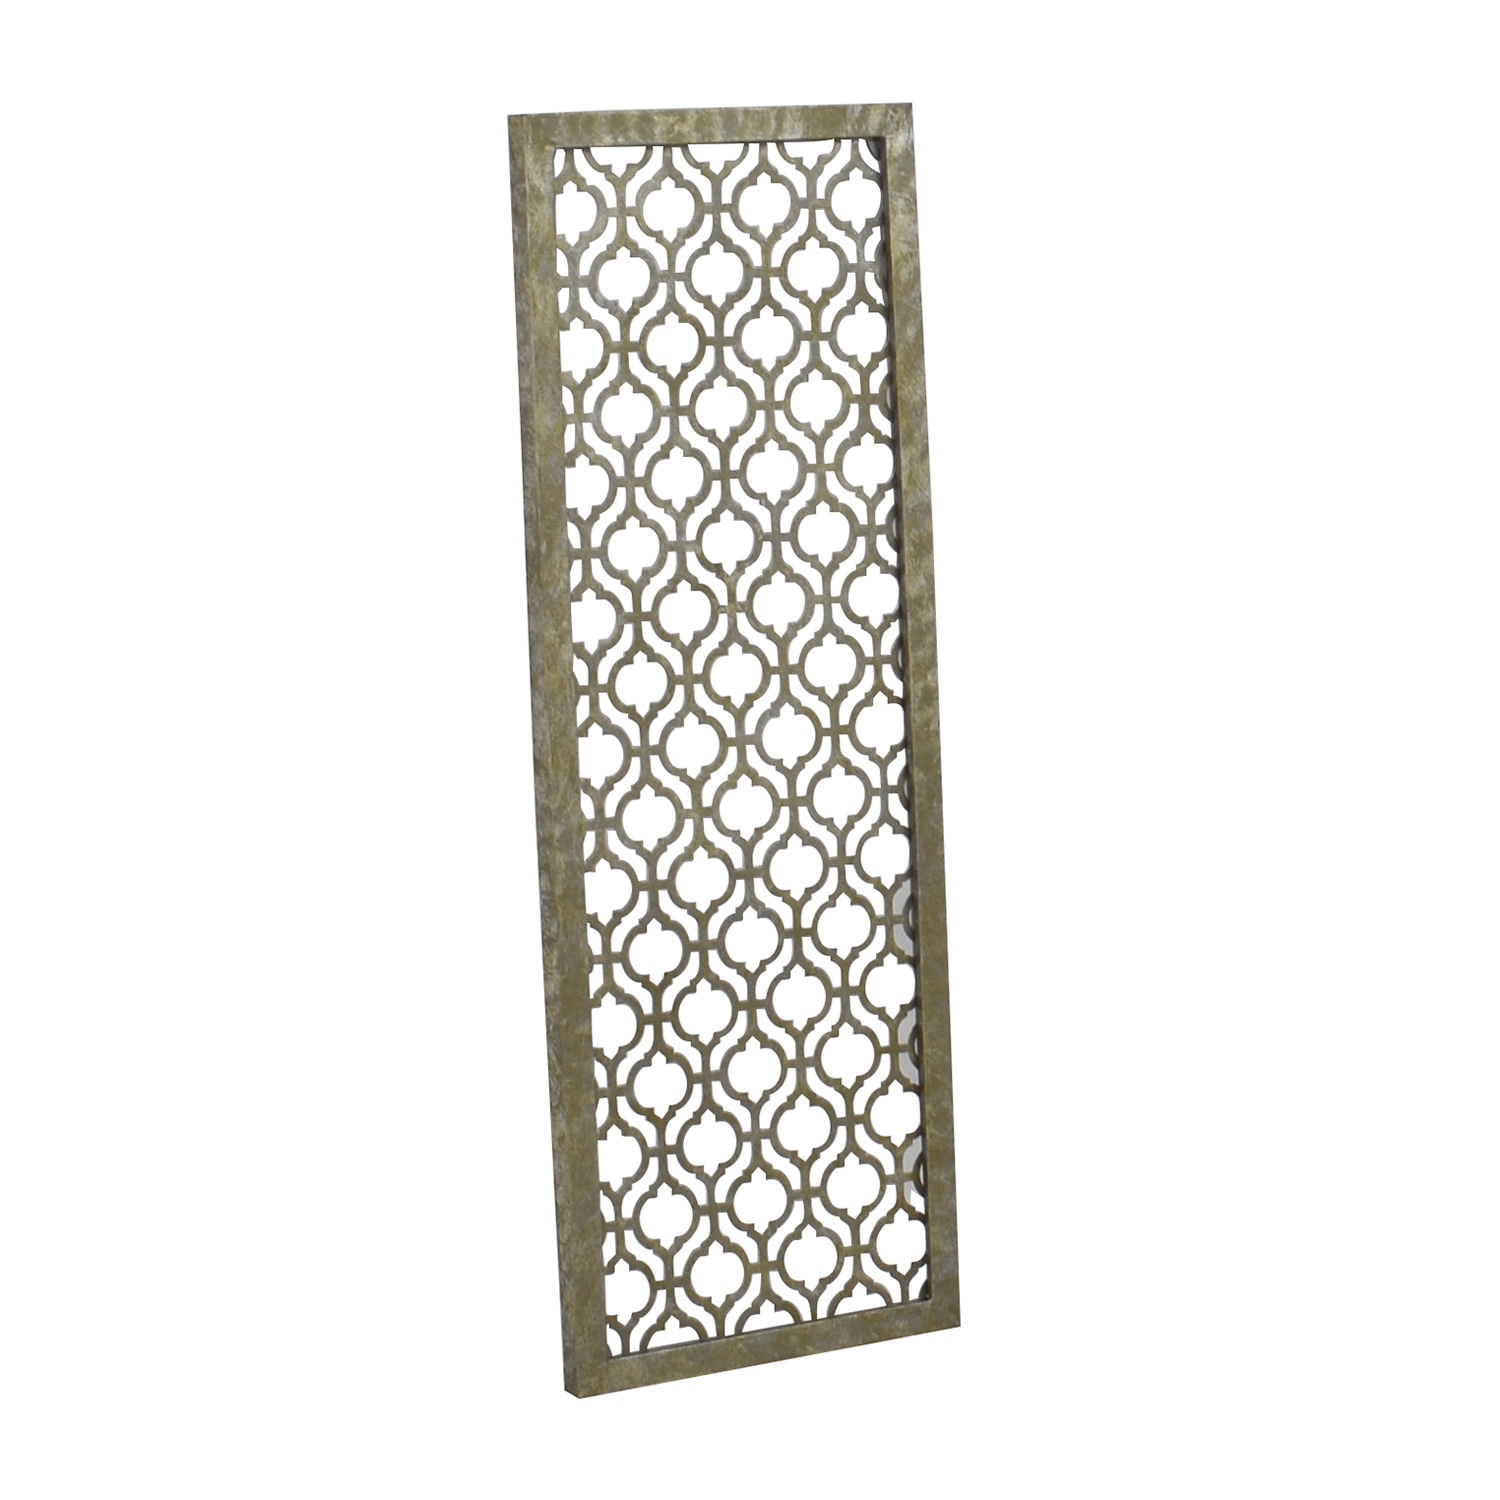 Pier 1 Imports Pier 1 Imports Trellis Metal Wall Panel